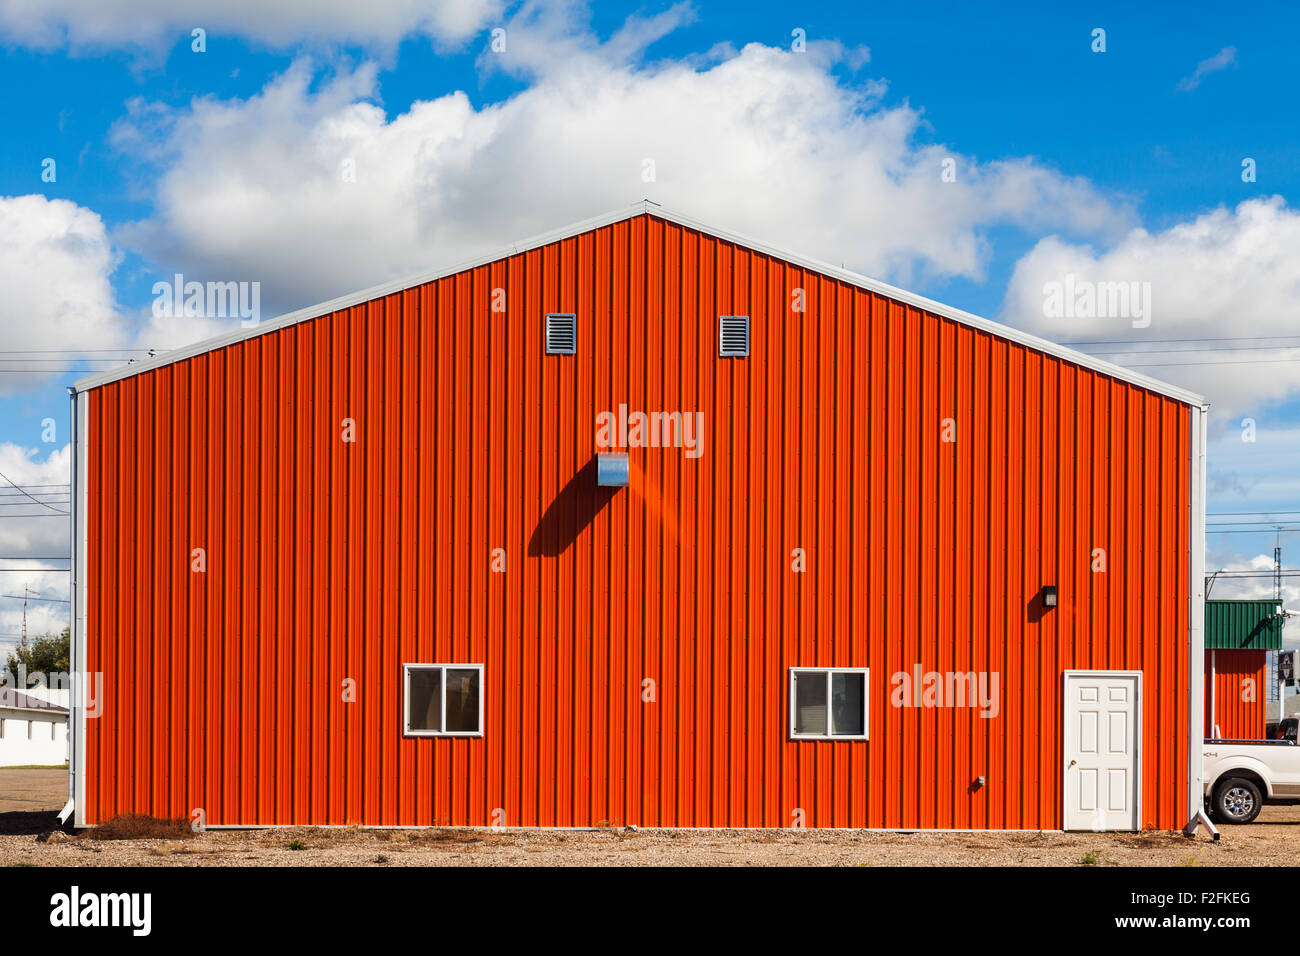 Orange agricultural building in the town of Castor, Alberta, Canada - Stock Image